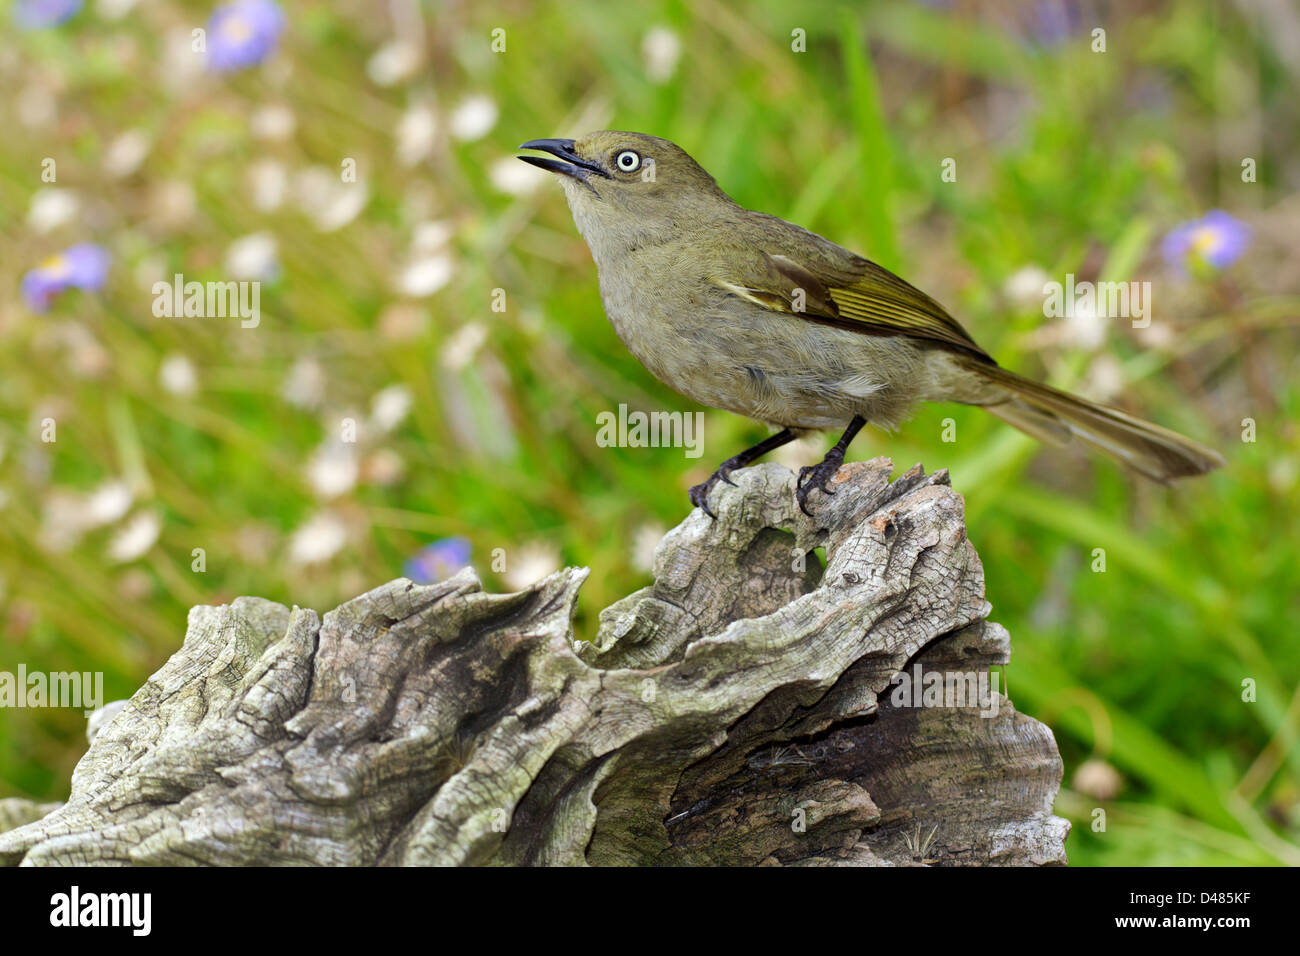 The Sombre Greenbul (Andropadus importunus) is a member of the bulbul family of passerine birds in Africa. - Stock Image